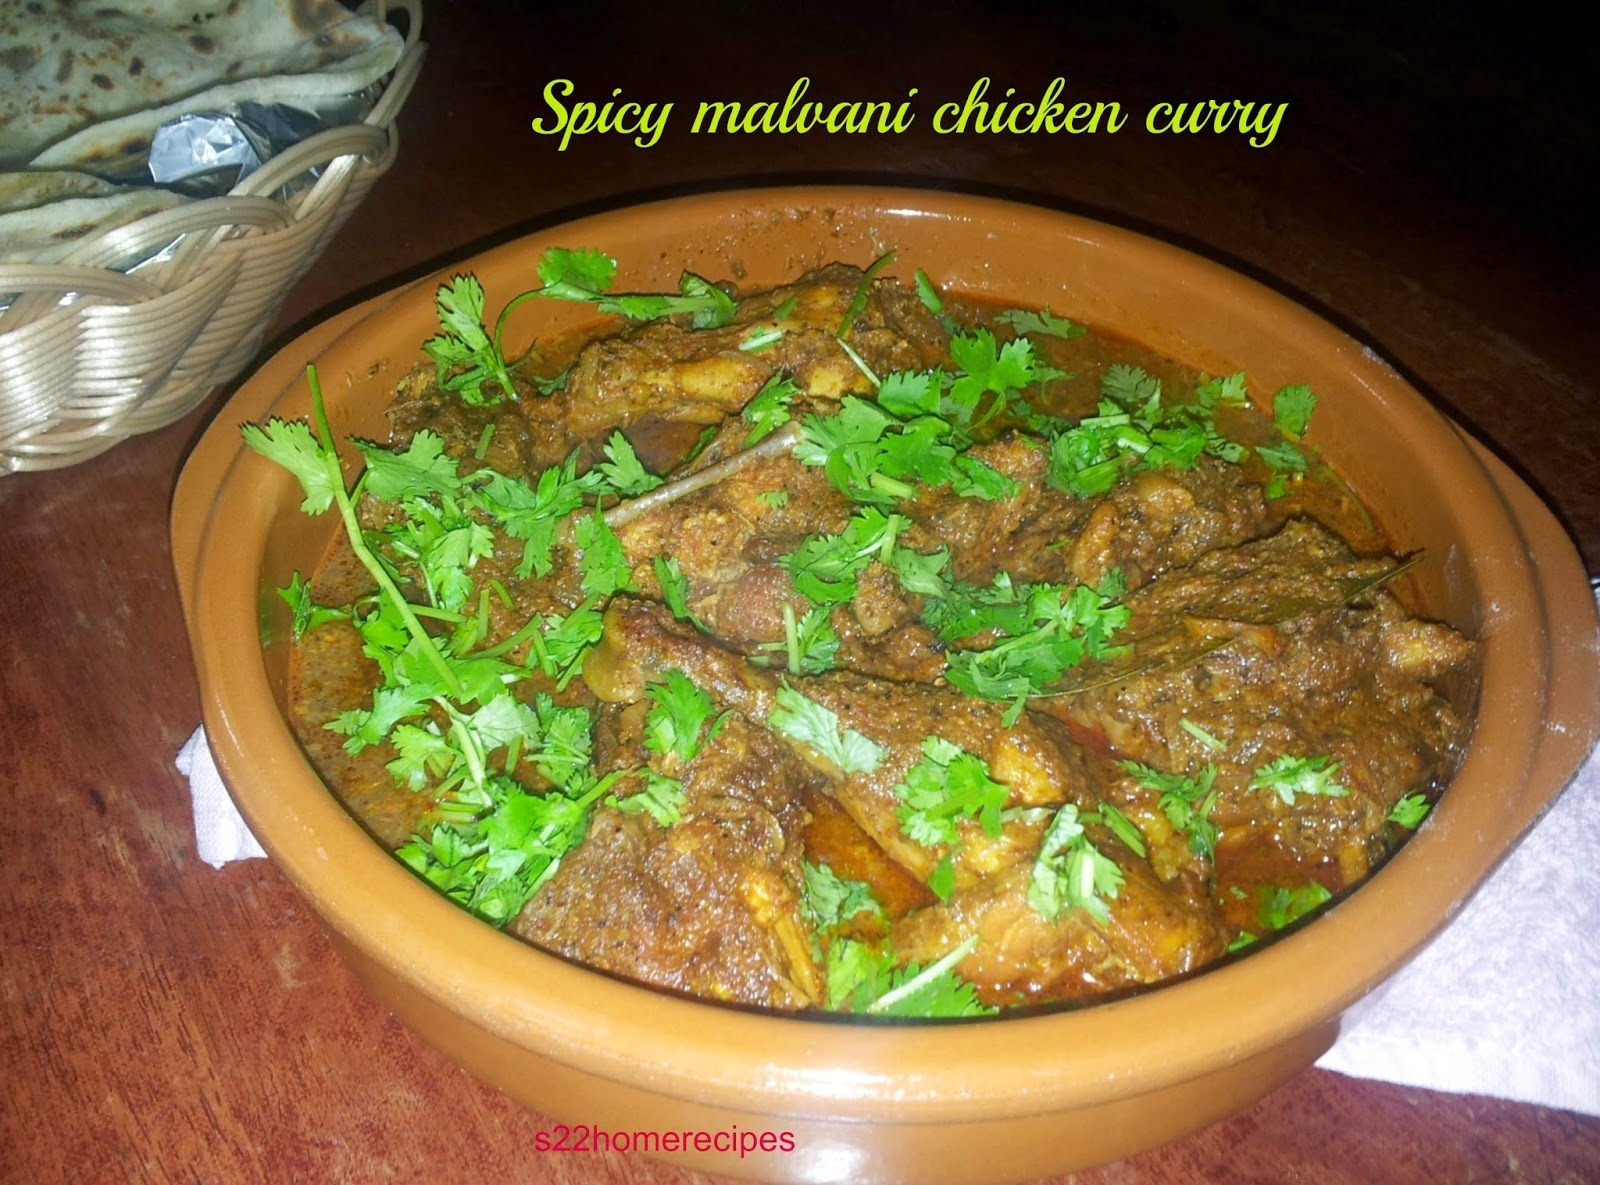 Spicy malvani chicken curry